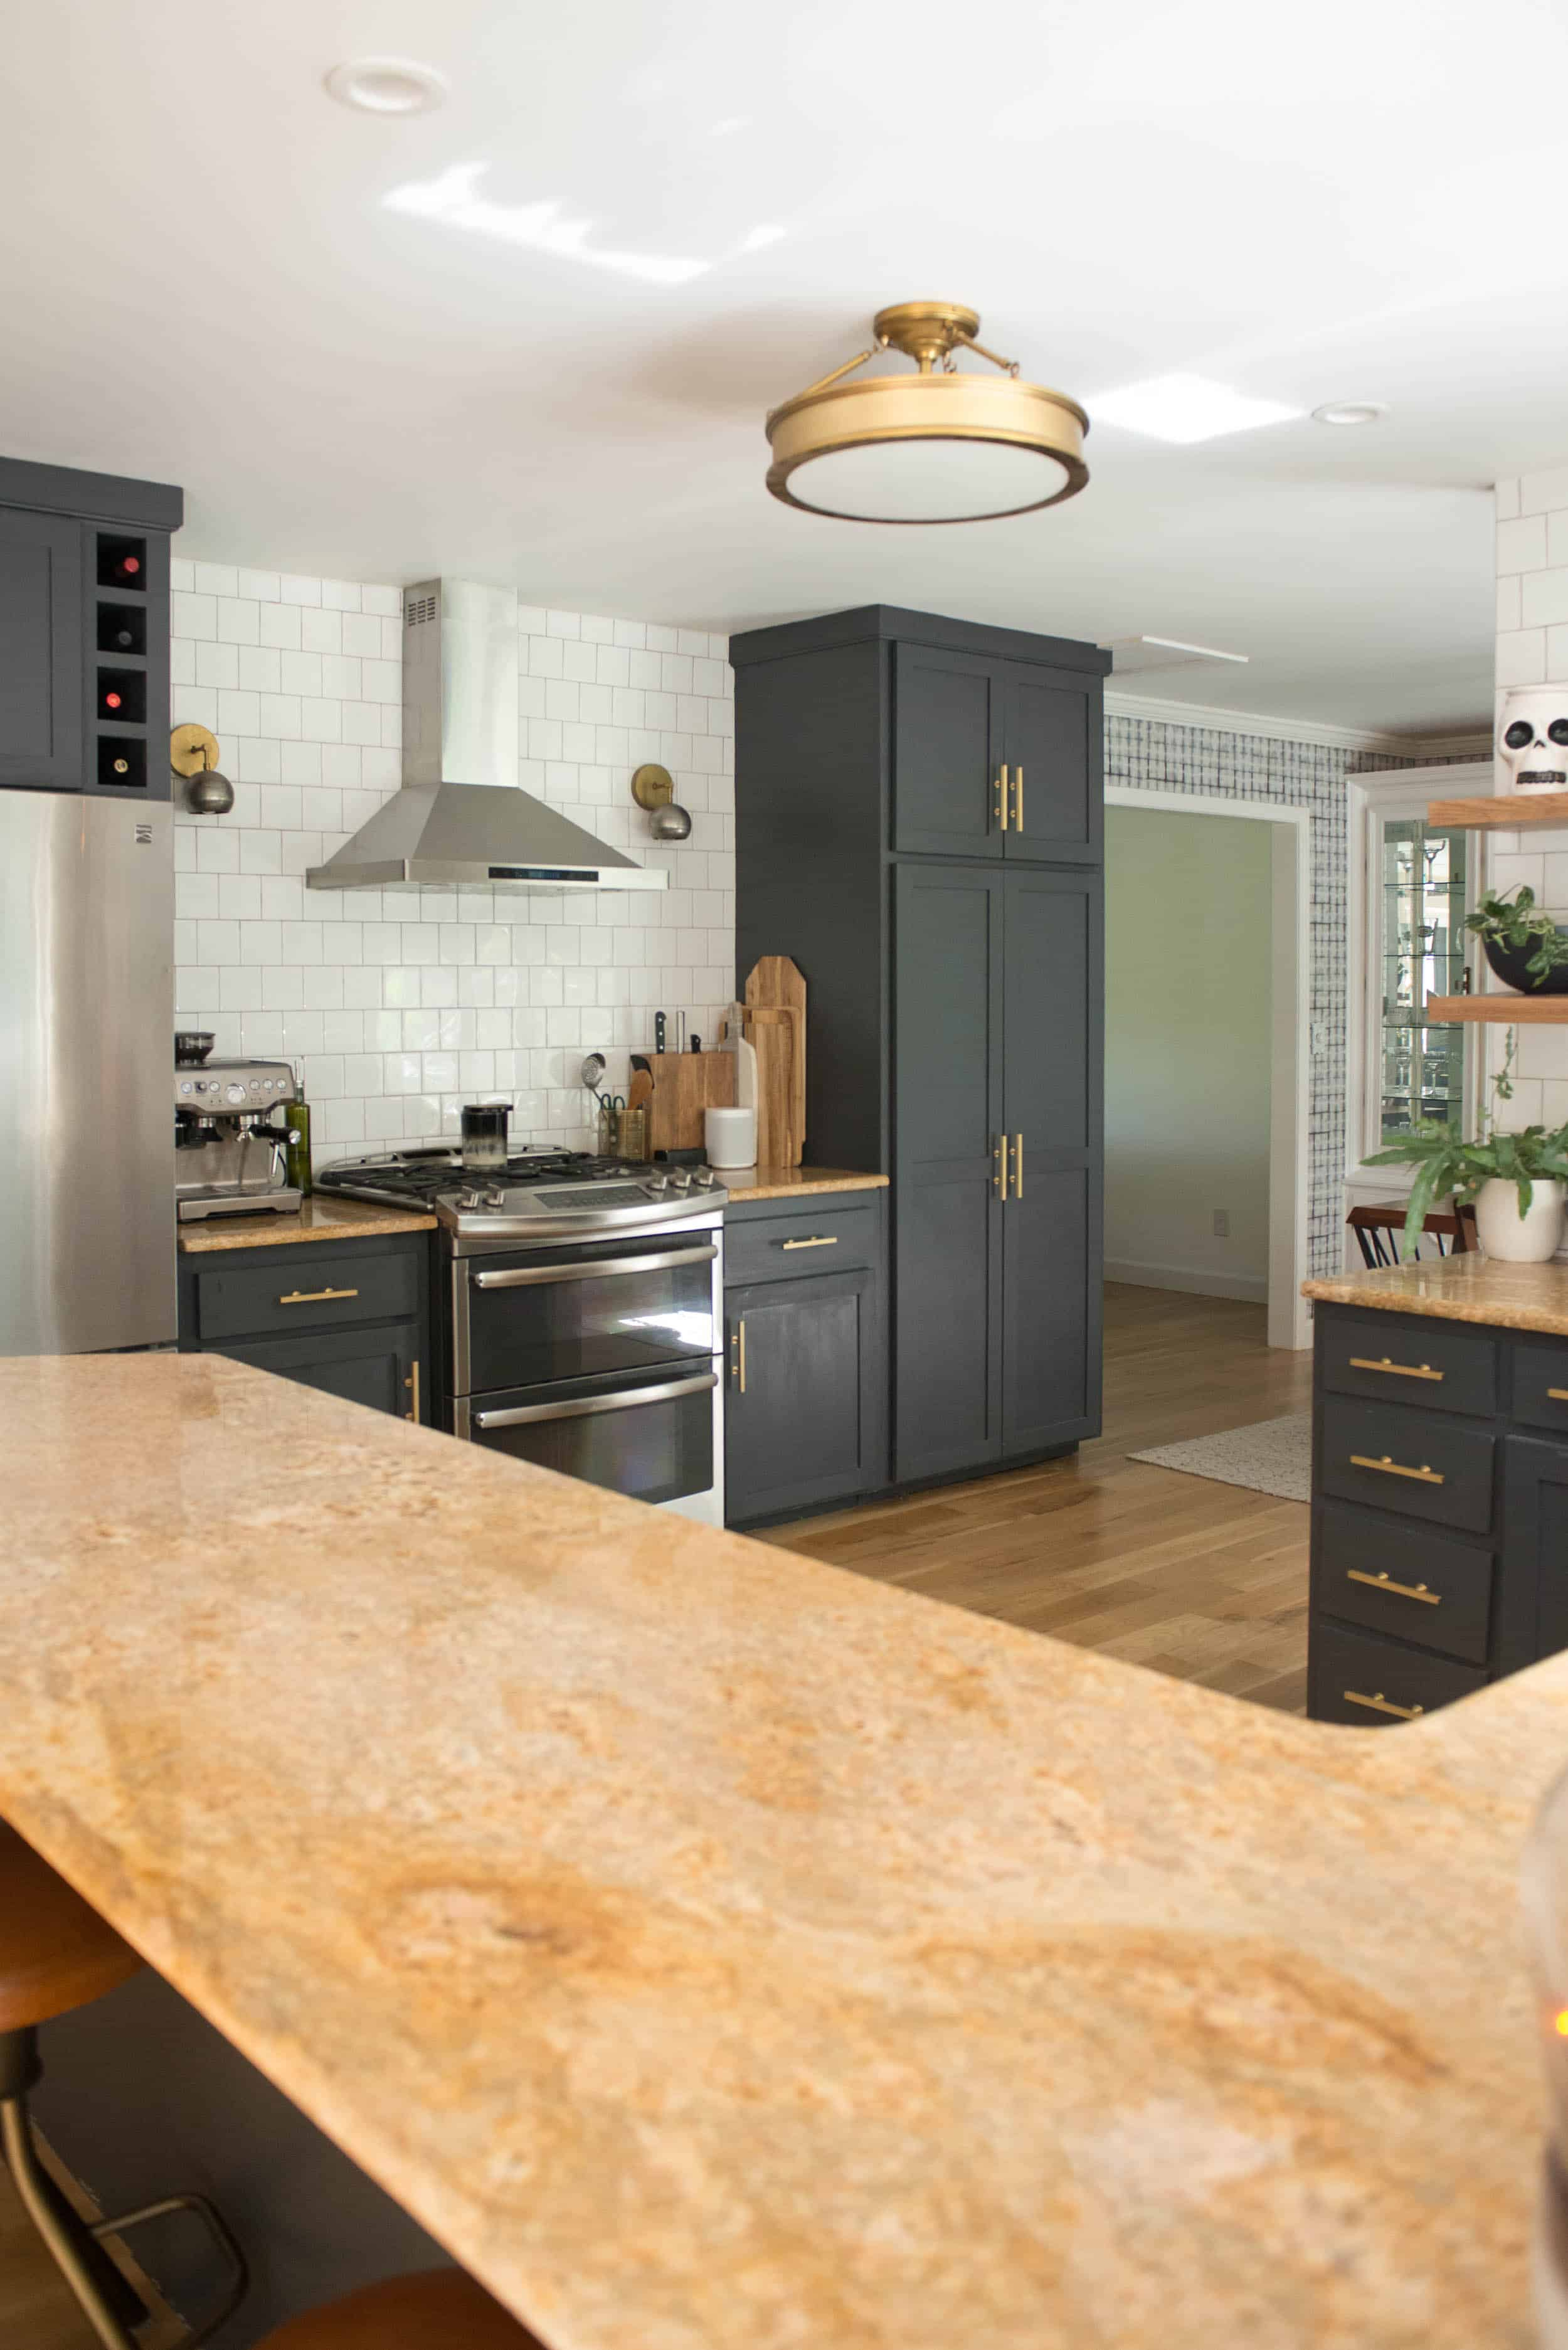 Brass and Black Kitchen with Halloween Decor